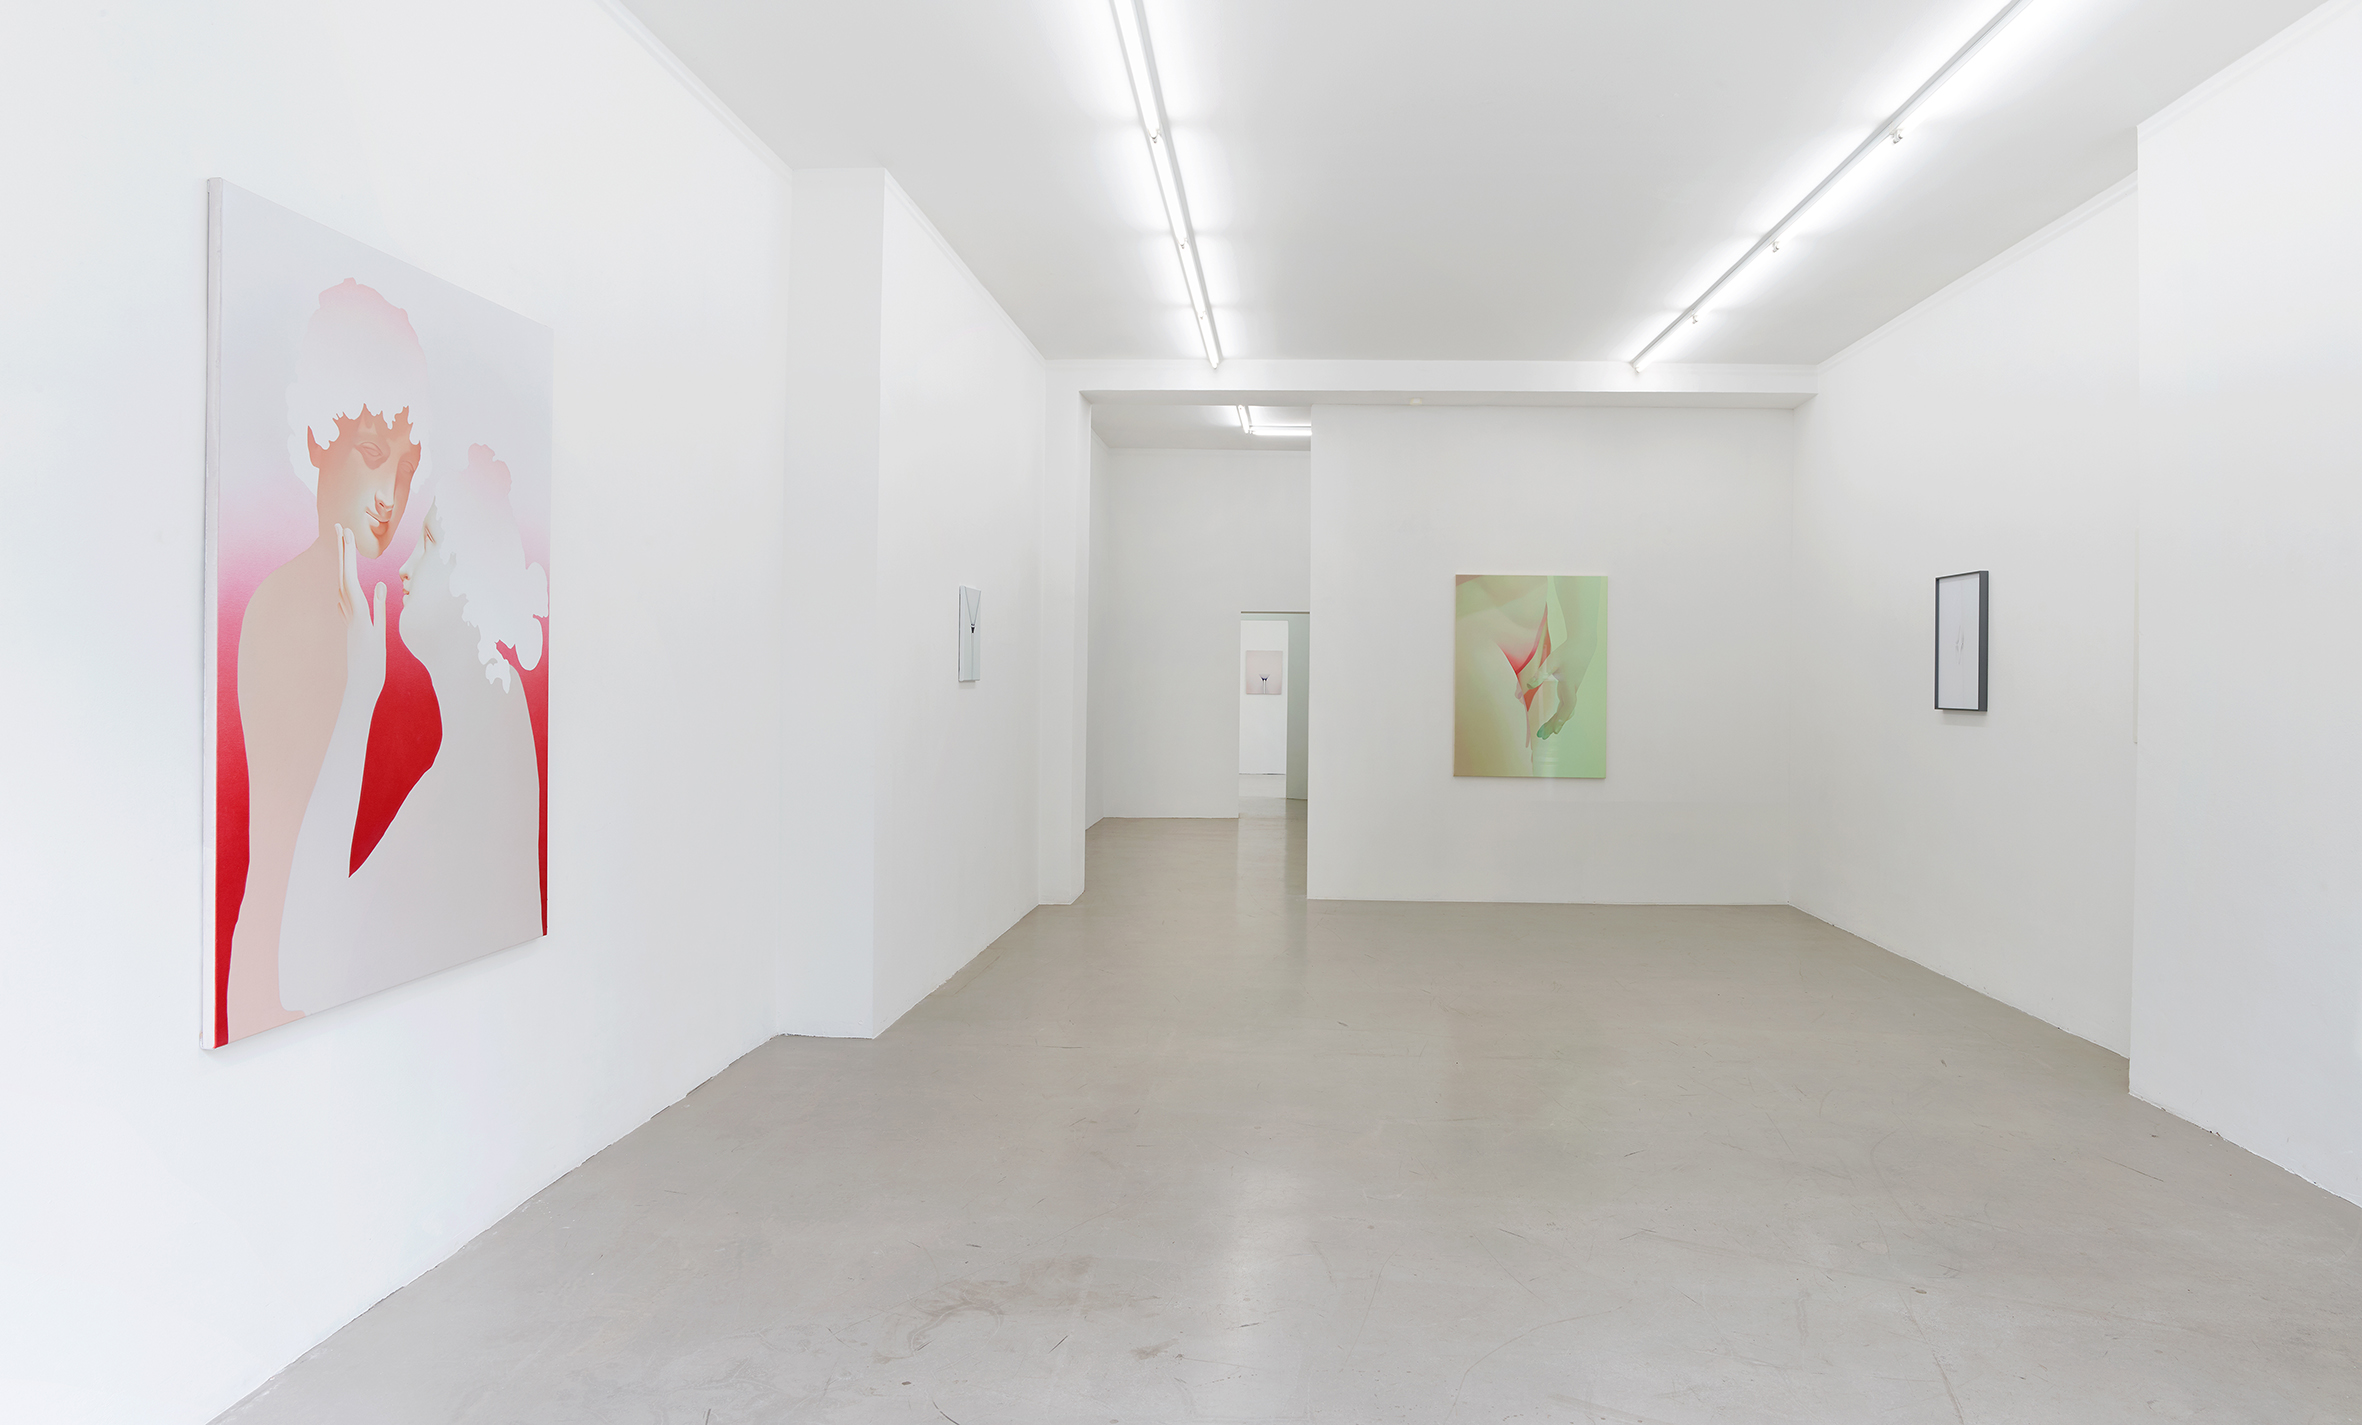 installation view:  0V , Kadel Willborn, Düsseldorf, 2019  Foto: Simon Vogel